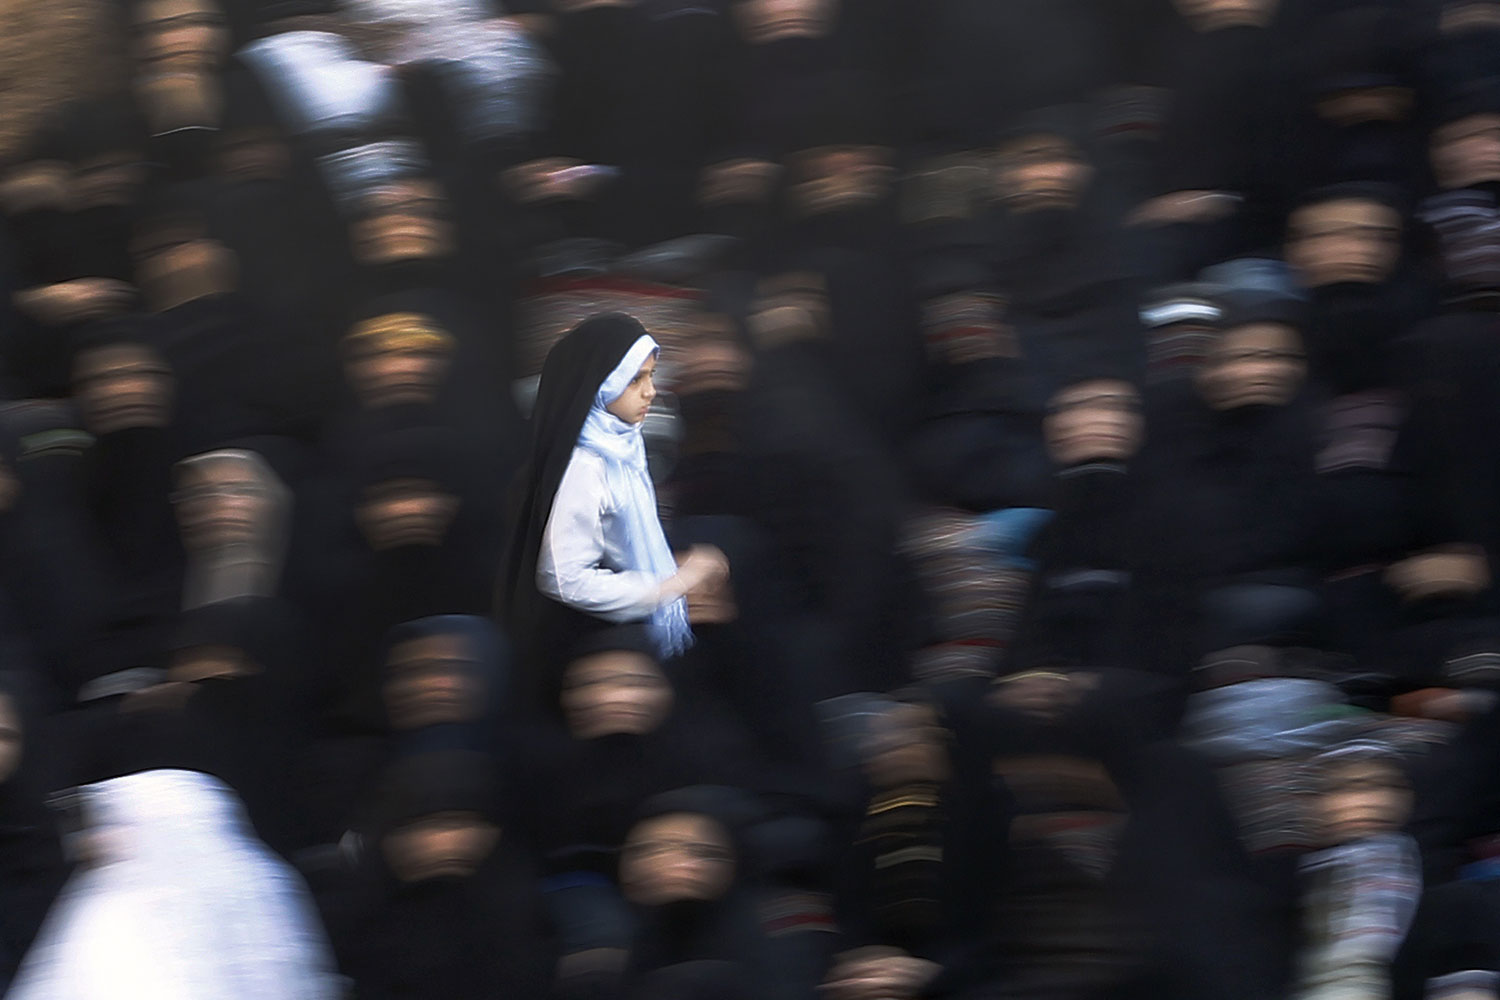 Aug 31,2011. An Iranian girl passing by the muslim worshipers at Imam zadeh Helal ebne Ali shrine in Aran o BidGol during Eid-al-Fitr festival. Aran o BidGol  is  a city in Isfahan province, located about 250 KM south of Tehran, Iran . The Eid-al-Fitr festival marks the end of the holy Muslim fasting month of Ramadan.